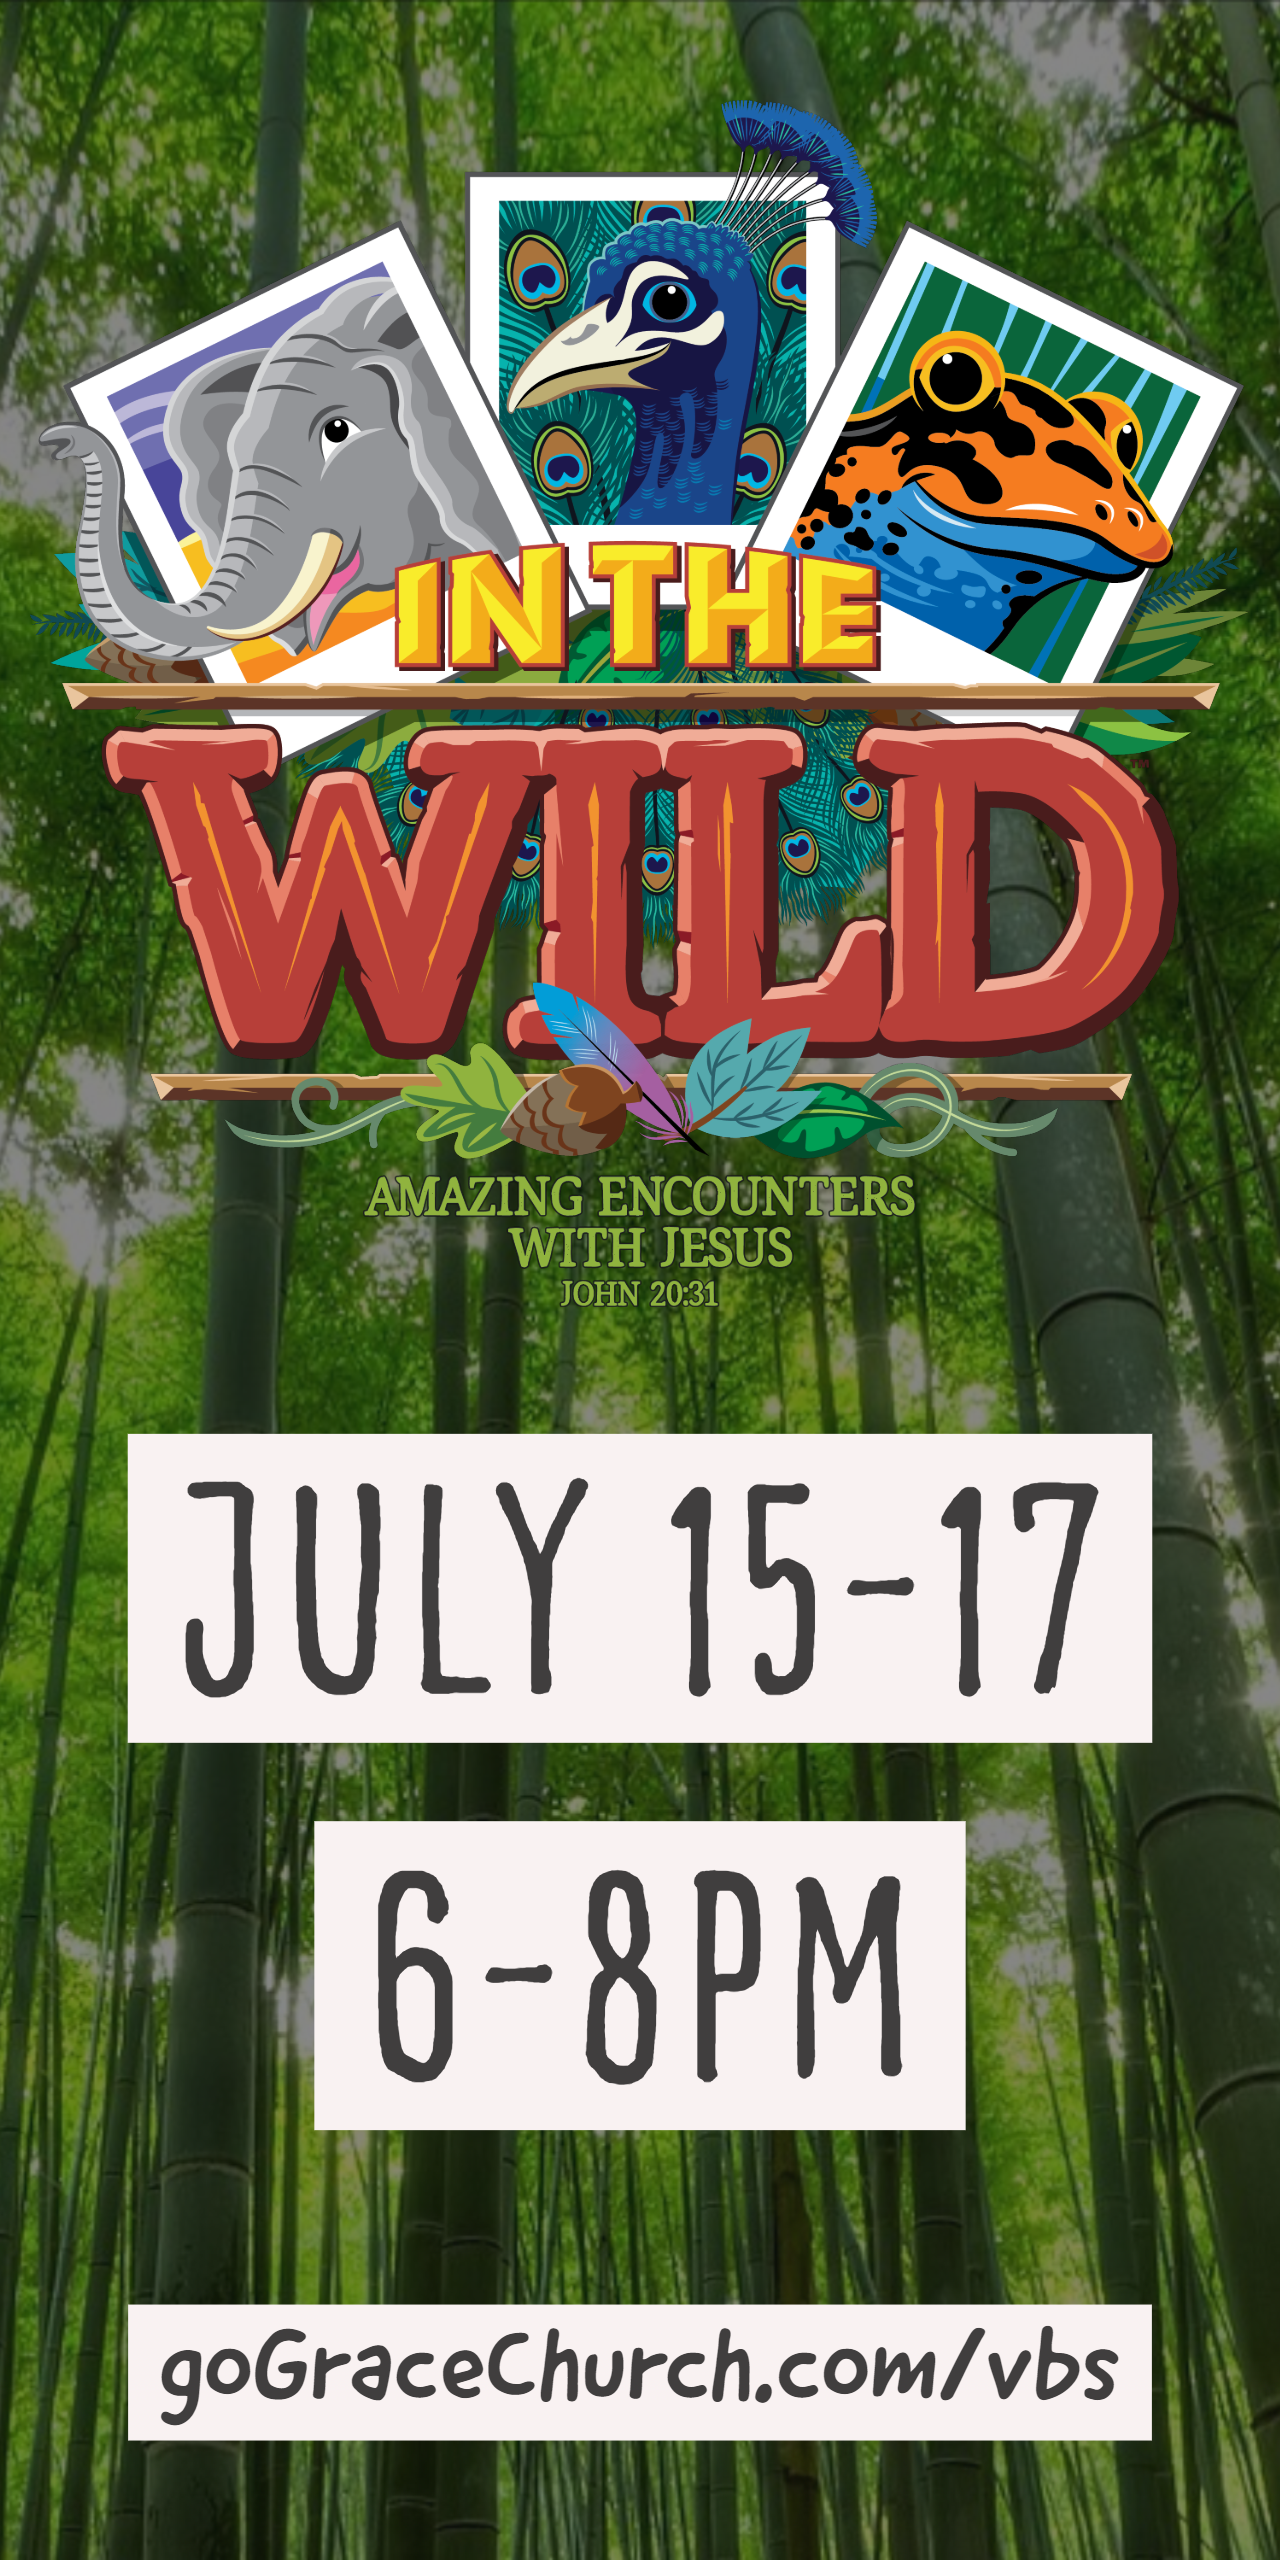 vbs_web_vertical.png